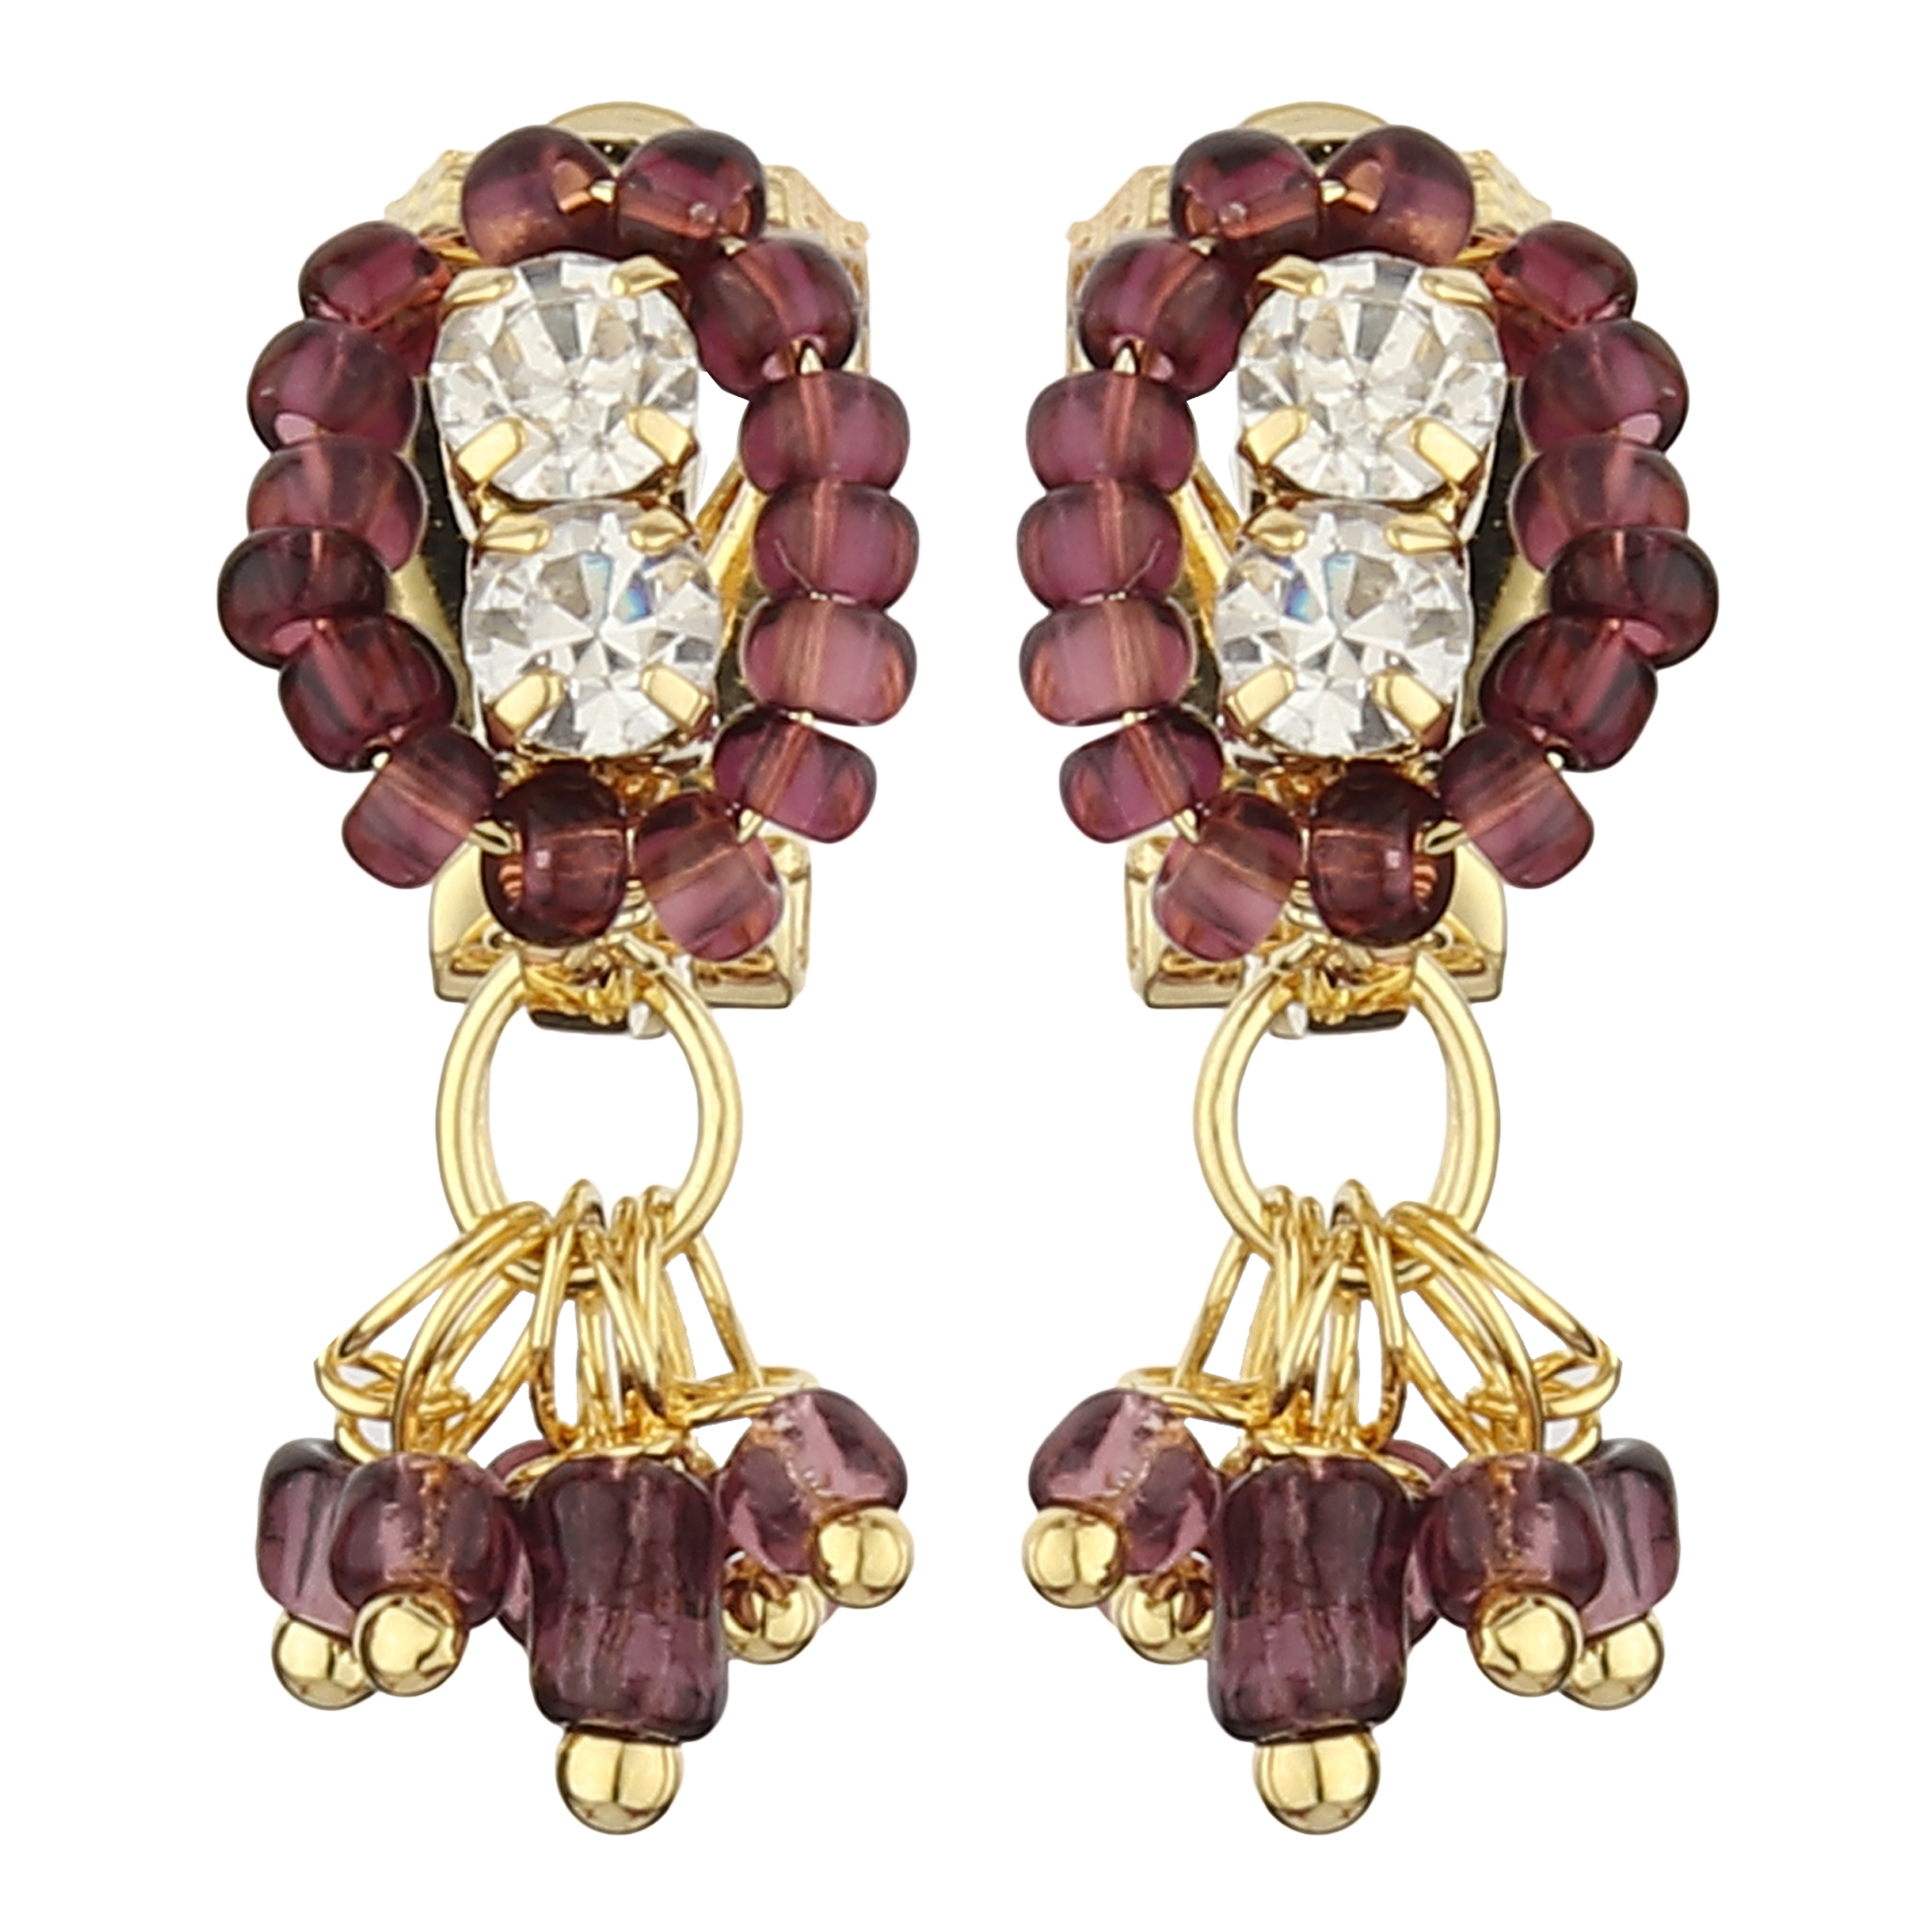 FirstBlush Clip On Earrings for Non Piearced Ears for Women & Girls; Plating: Gold; Color: Purple; Size: 20 X 8mm; Wt.: 2gm. (MIEC104M117)